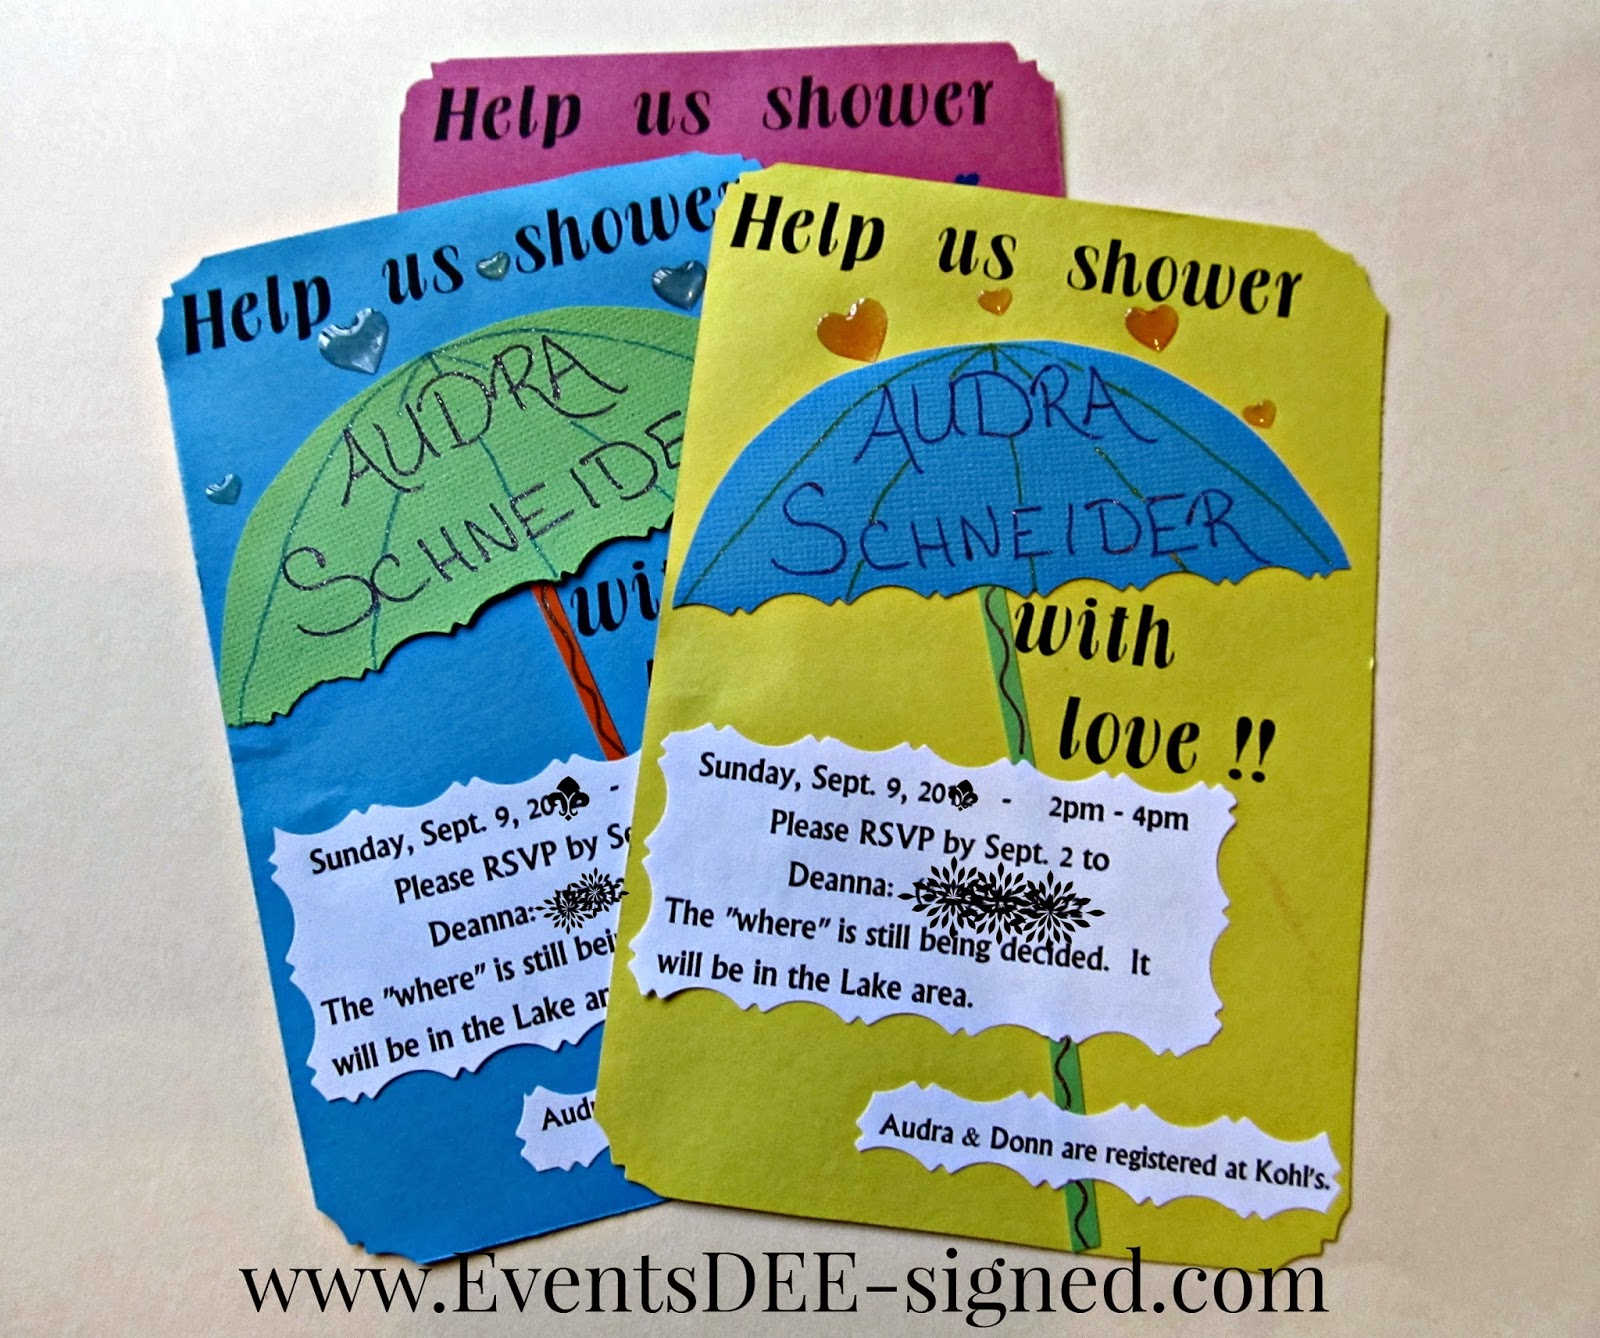 EventsDEE-signed Bridal Shower Invitation weddings party planning event planning